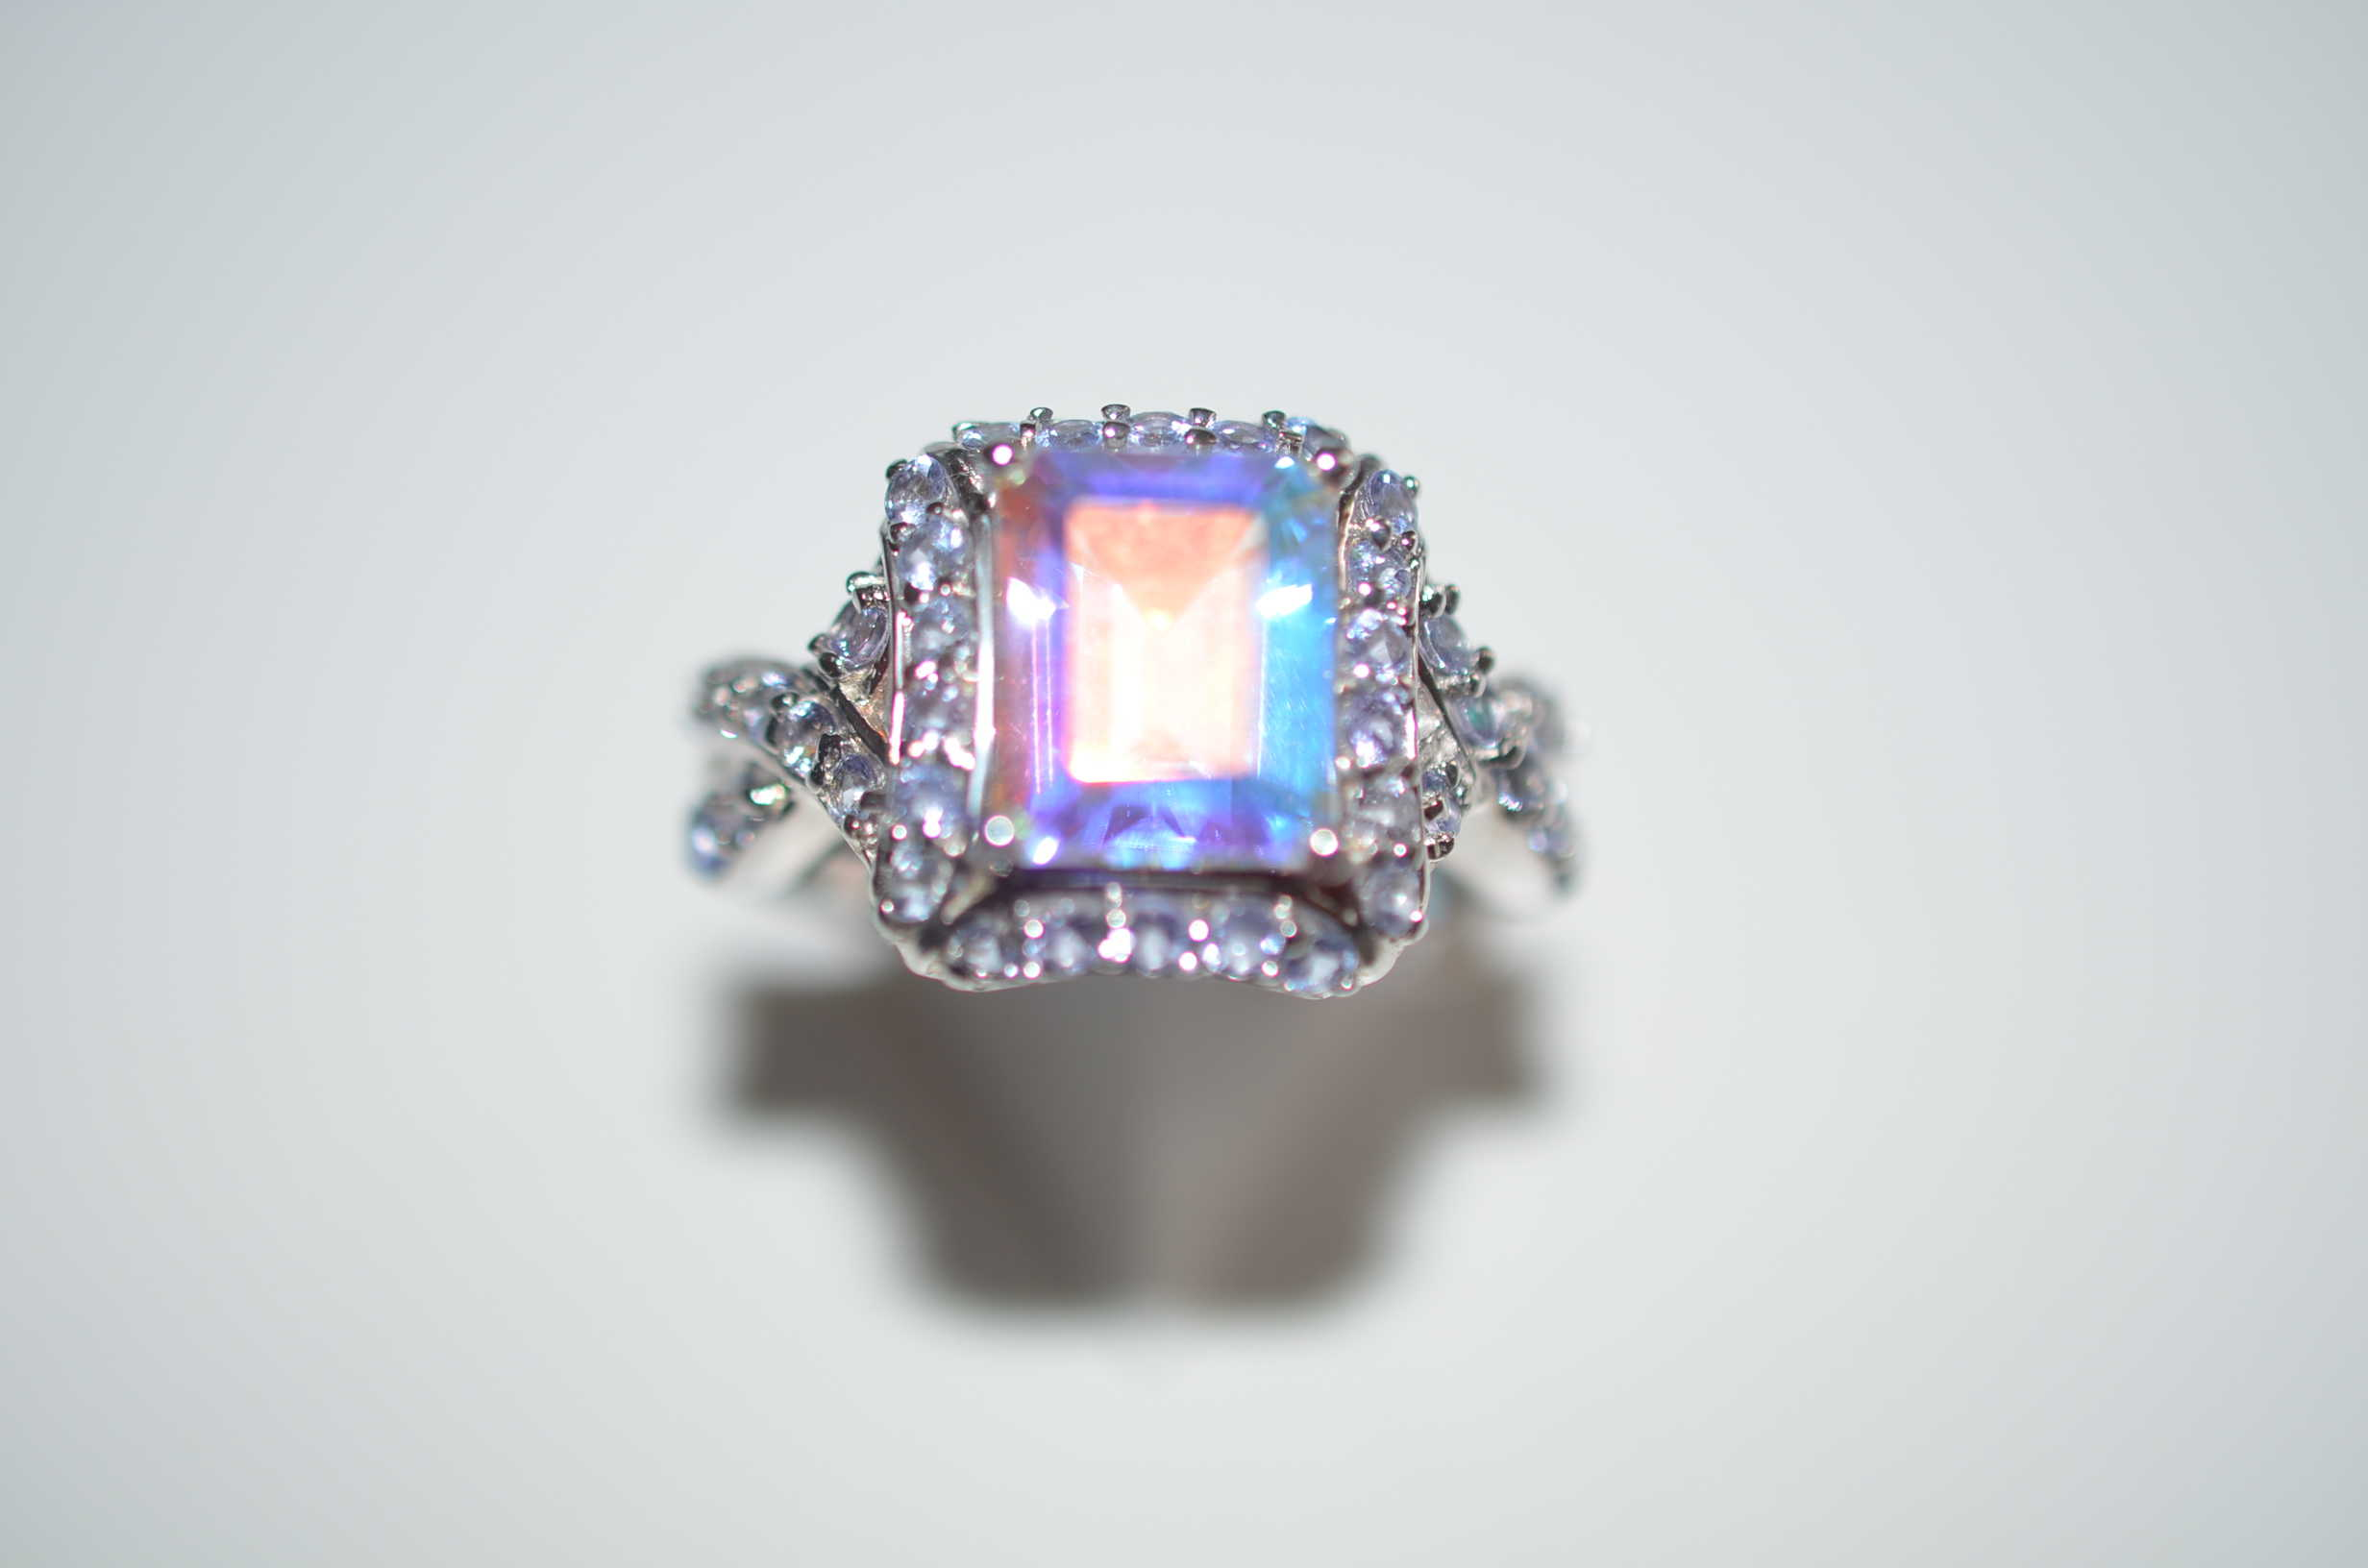 silver mystic op fire lab product sharpen topaz halo wid created ring jsp rings hei sterling prd